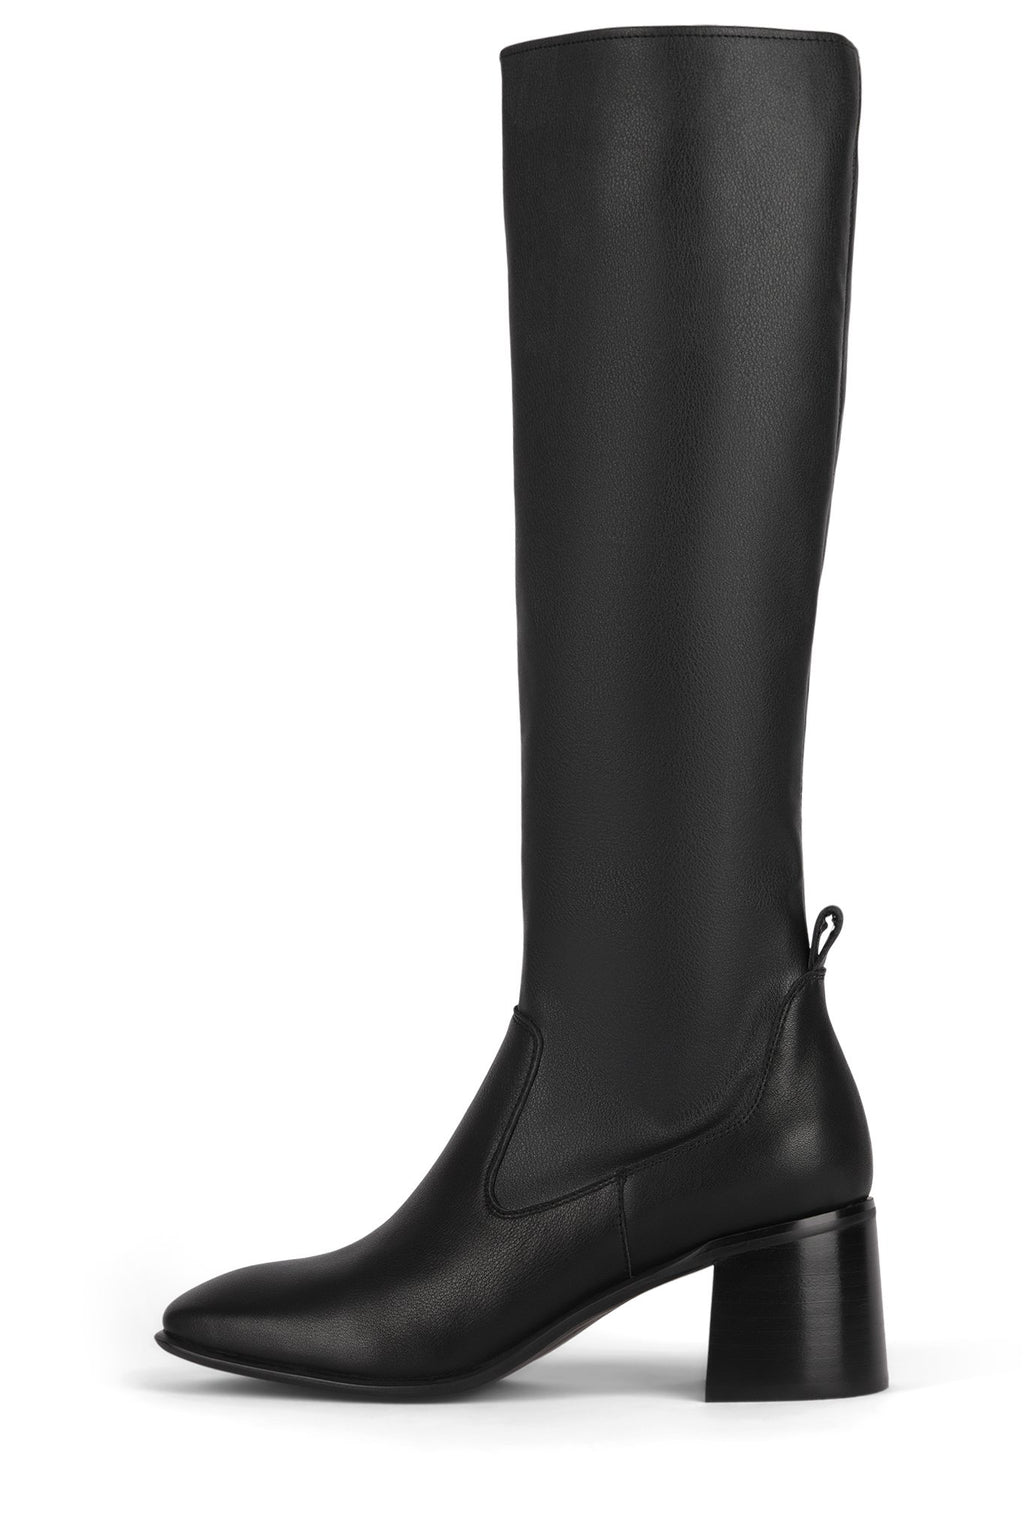 JEREM-KH Knee-High Boot Jeffrey Campbell Black 6